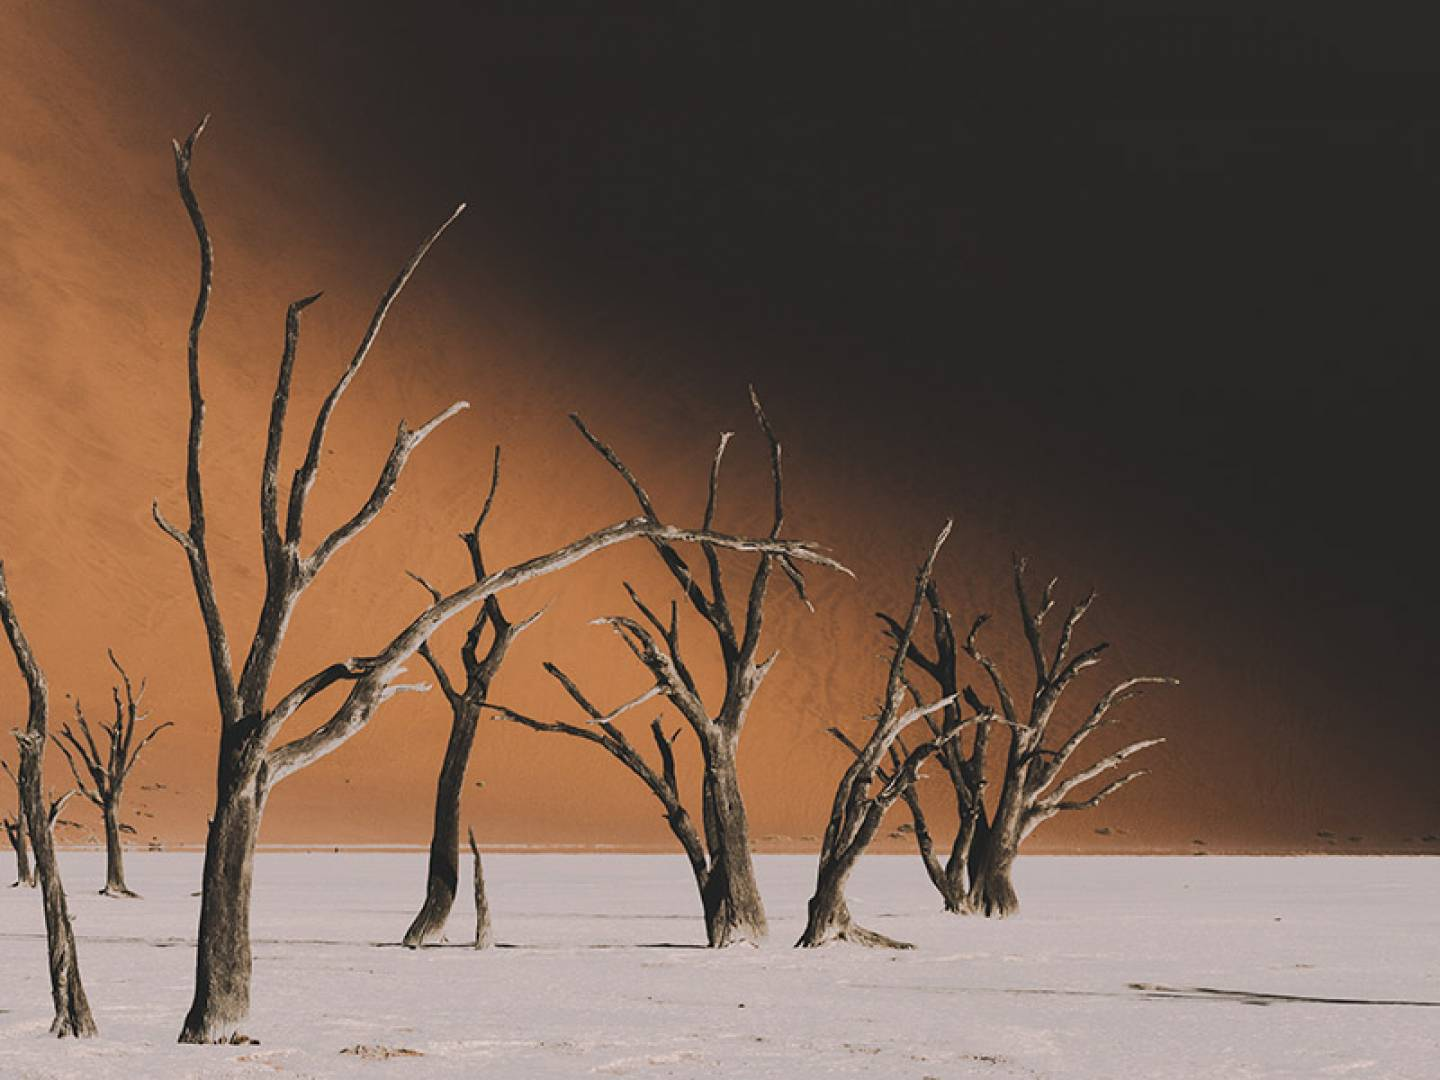 A dry, lonely tree in the middle of the Namib Desert, Namibia